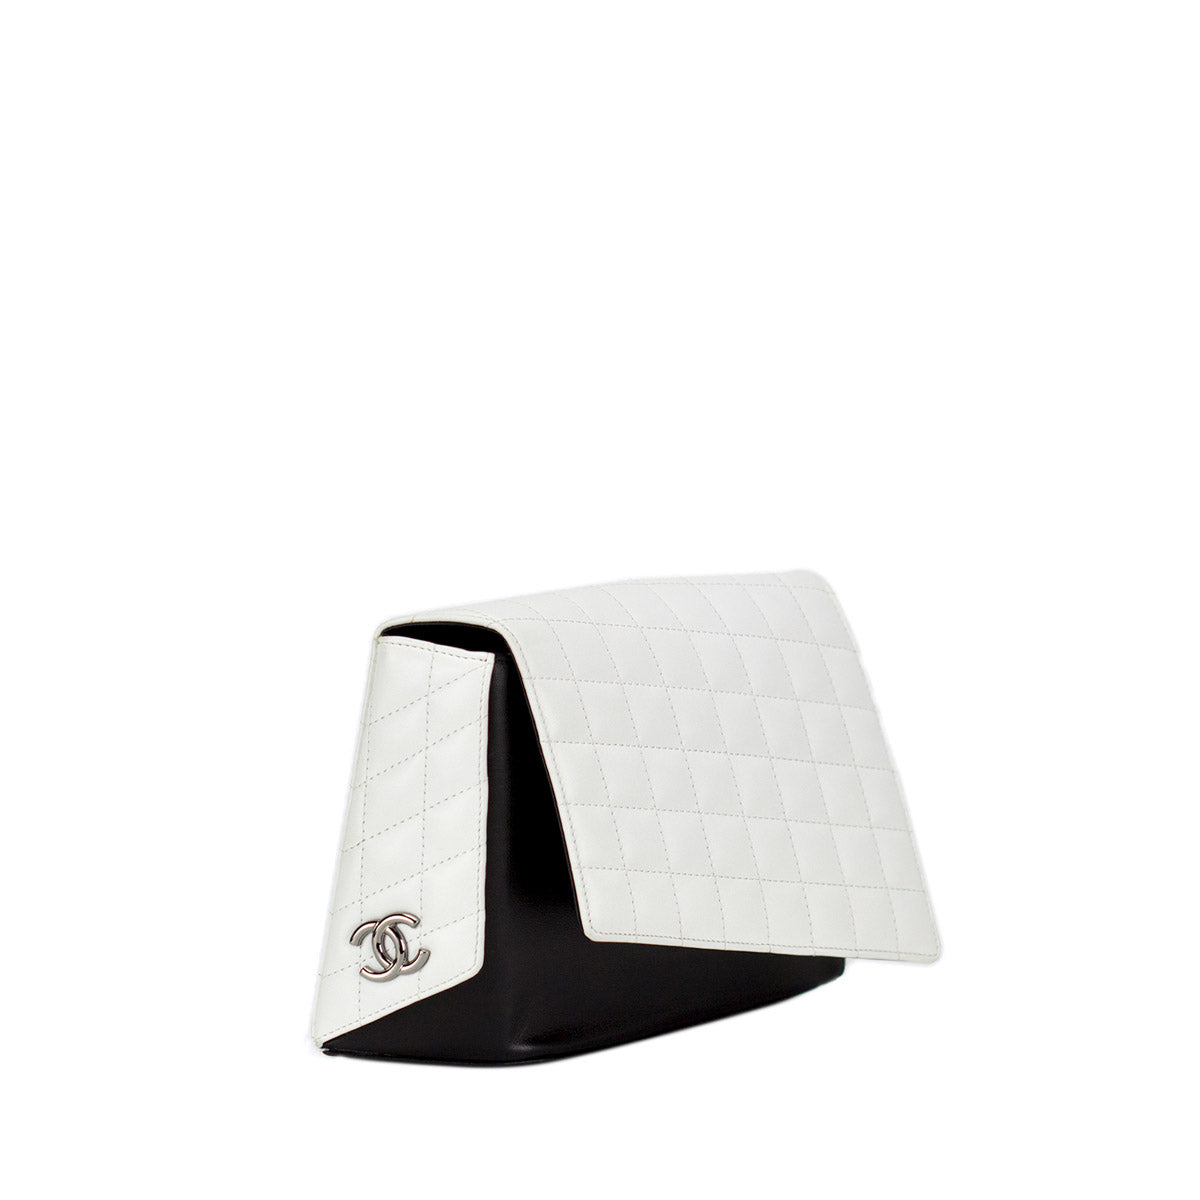 Lambskin Quilted Clutch